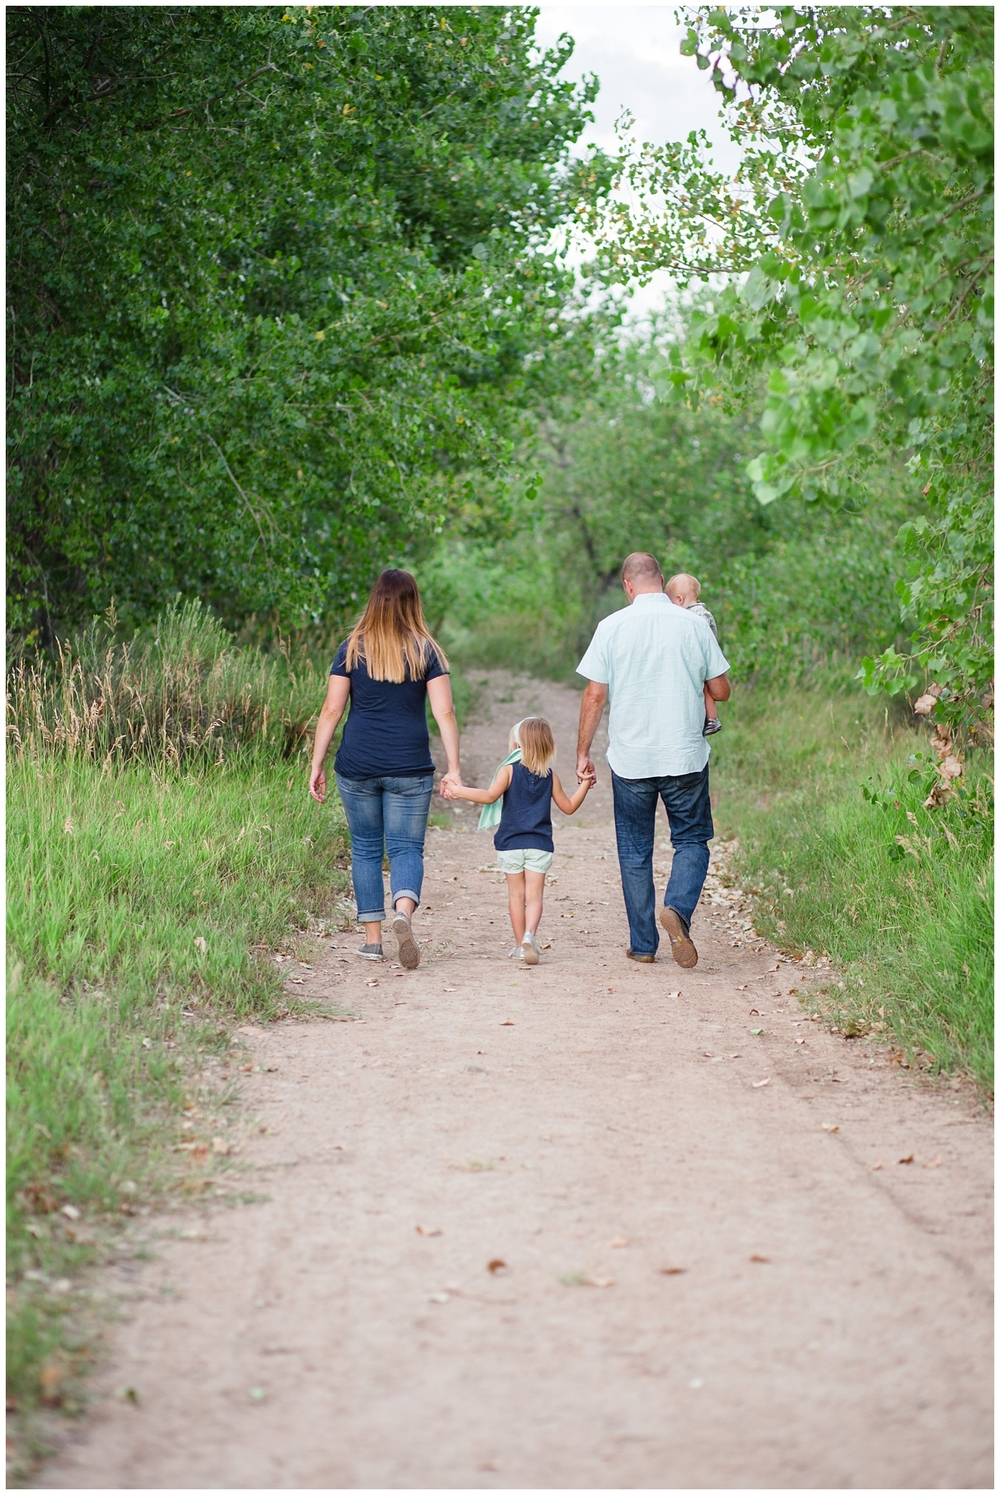 20150728FamilySunderlandJessica001_fort collins family photographer.jpg